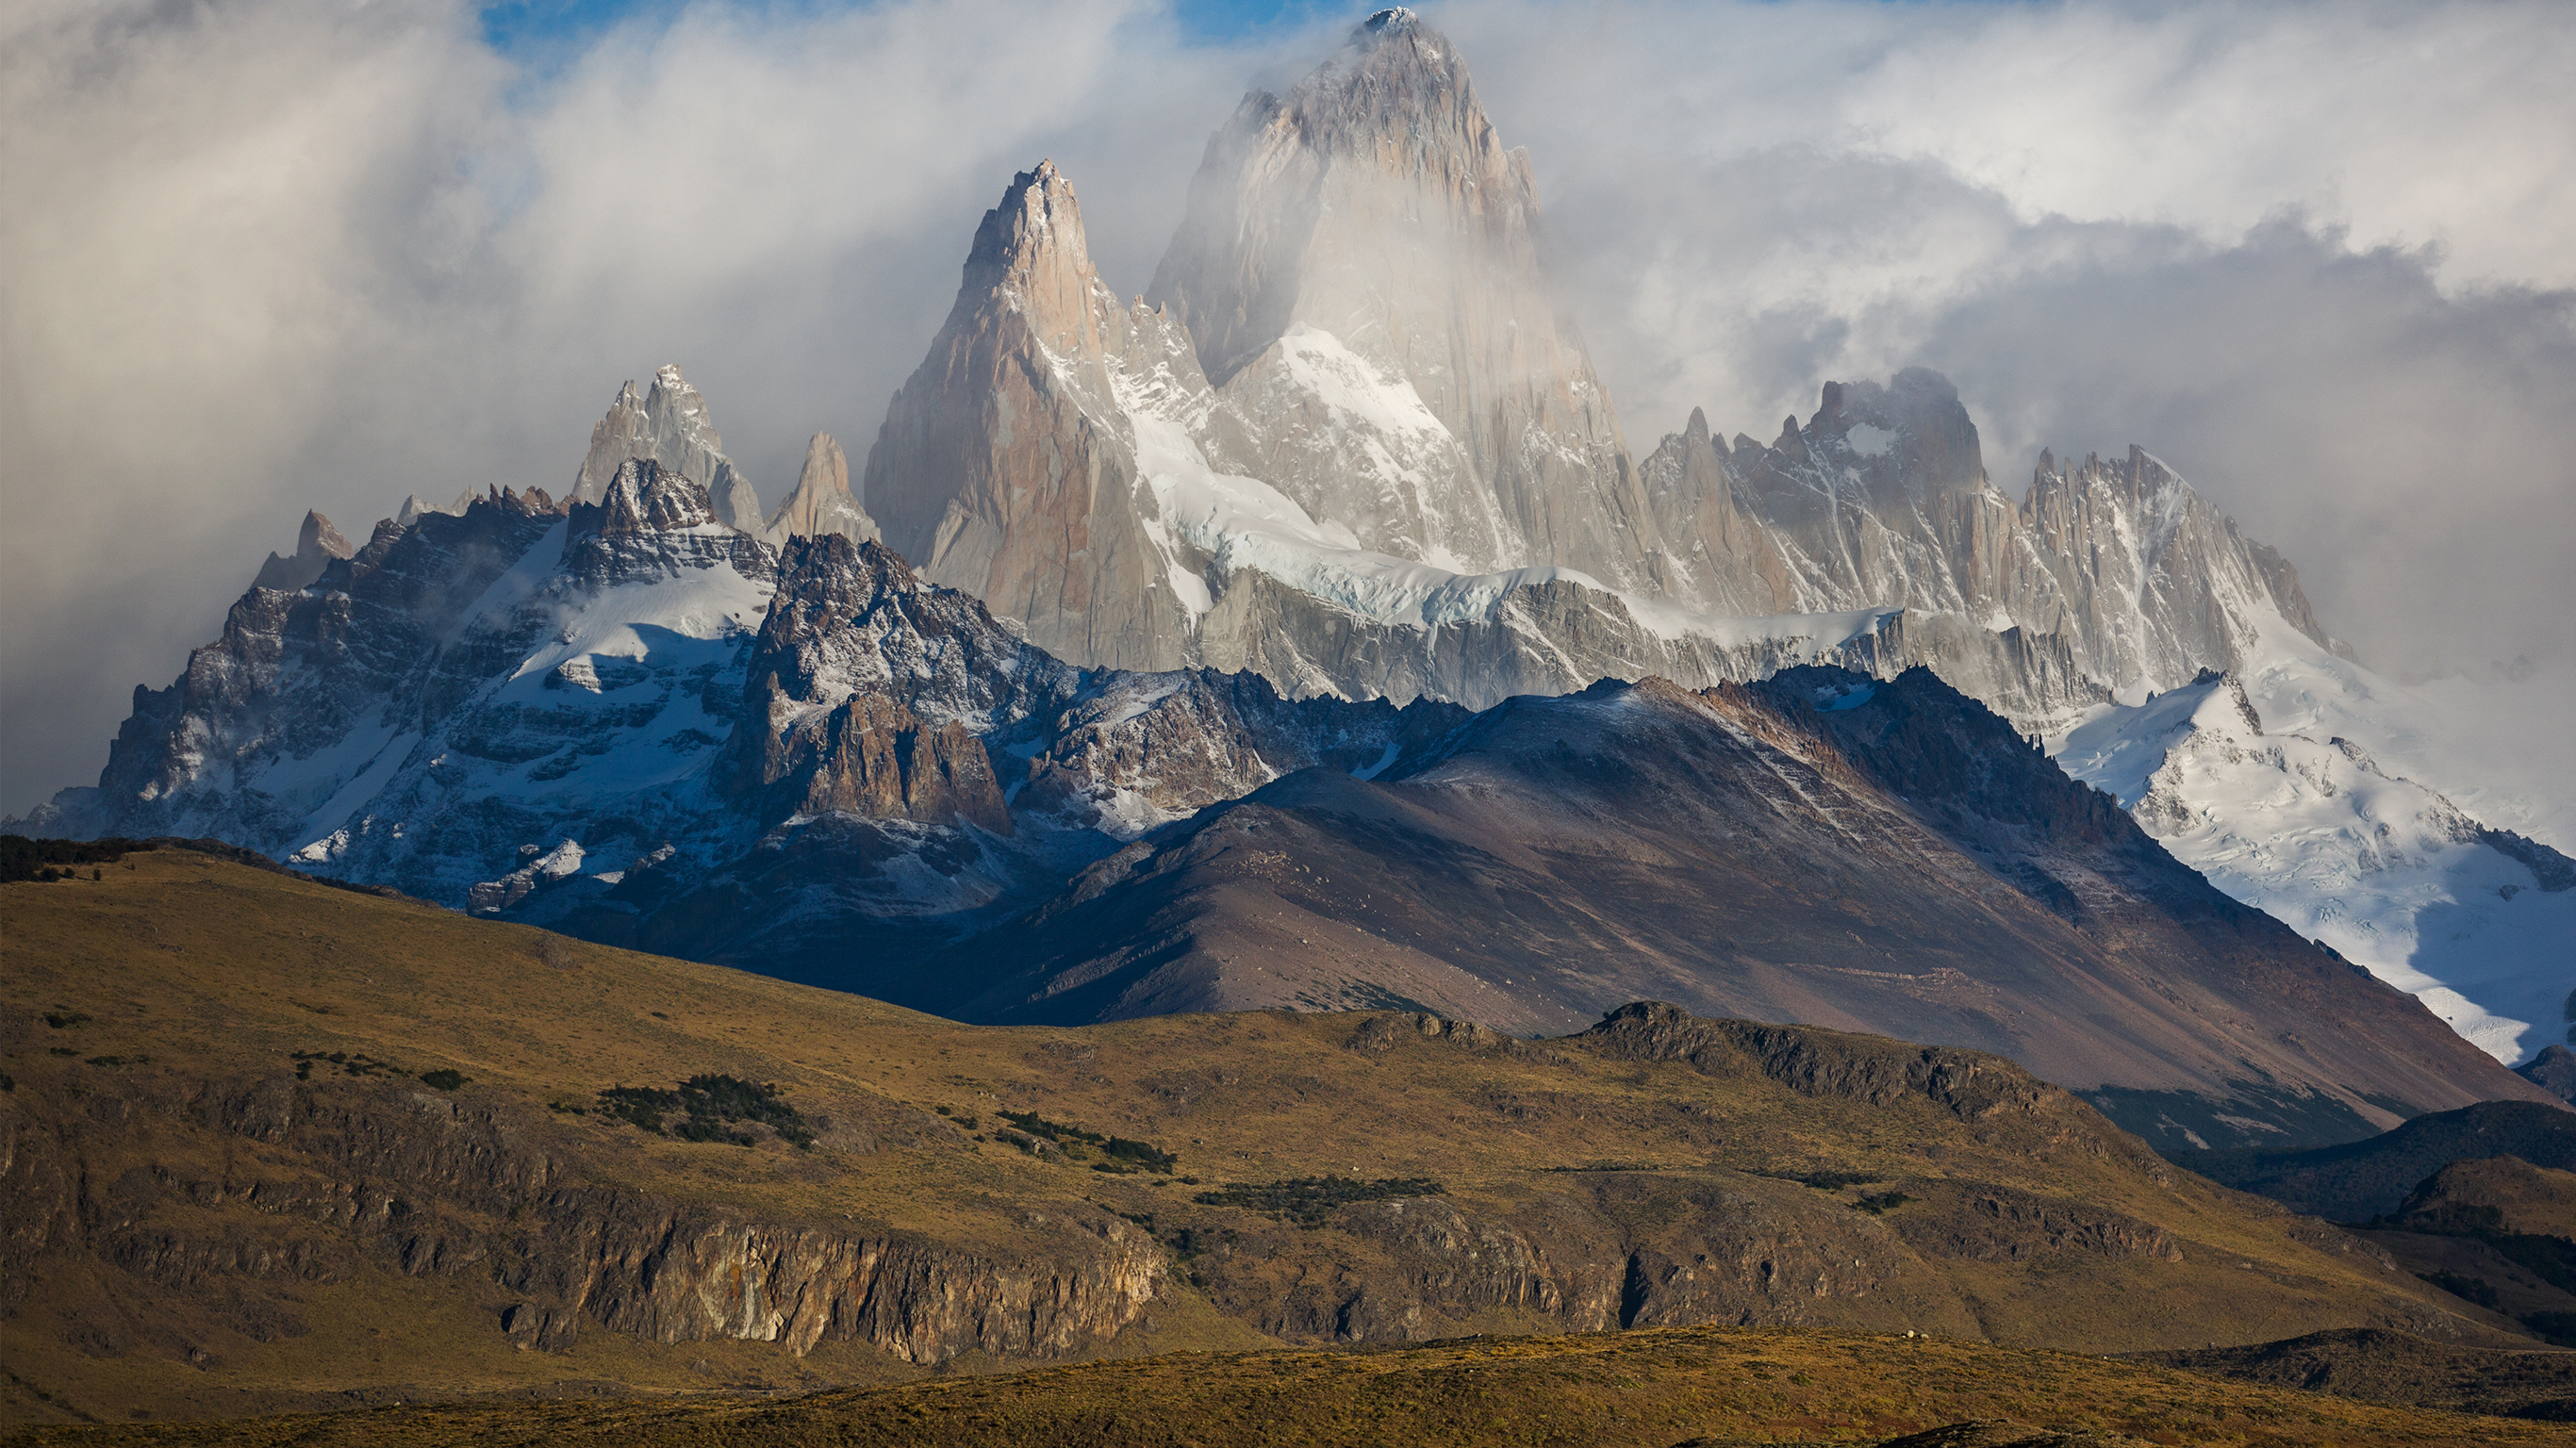 patagonia travel argentina lonely planet - HD2732×1536